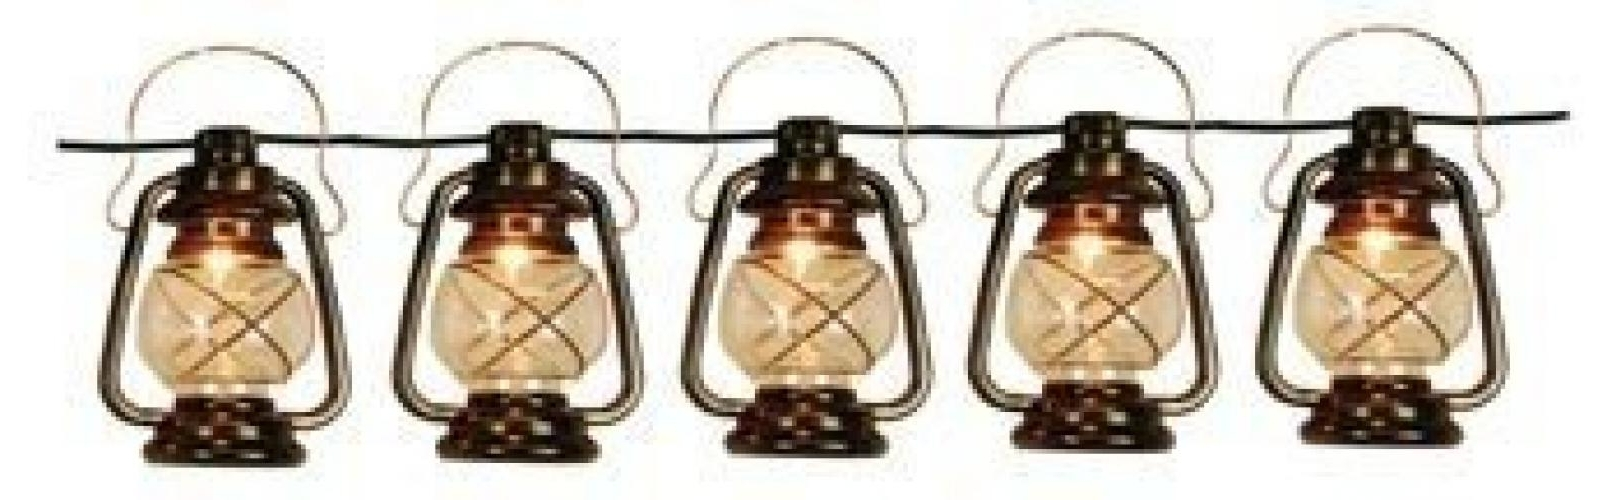 Outdoor Oil Lanterns For Patio For Most Recent Patio String Lights Oil Lantern Style Indoor Outdoor – Walmart (View 12 of 20)